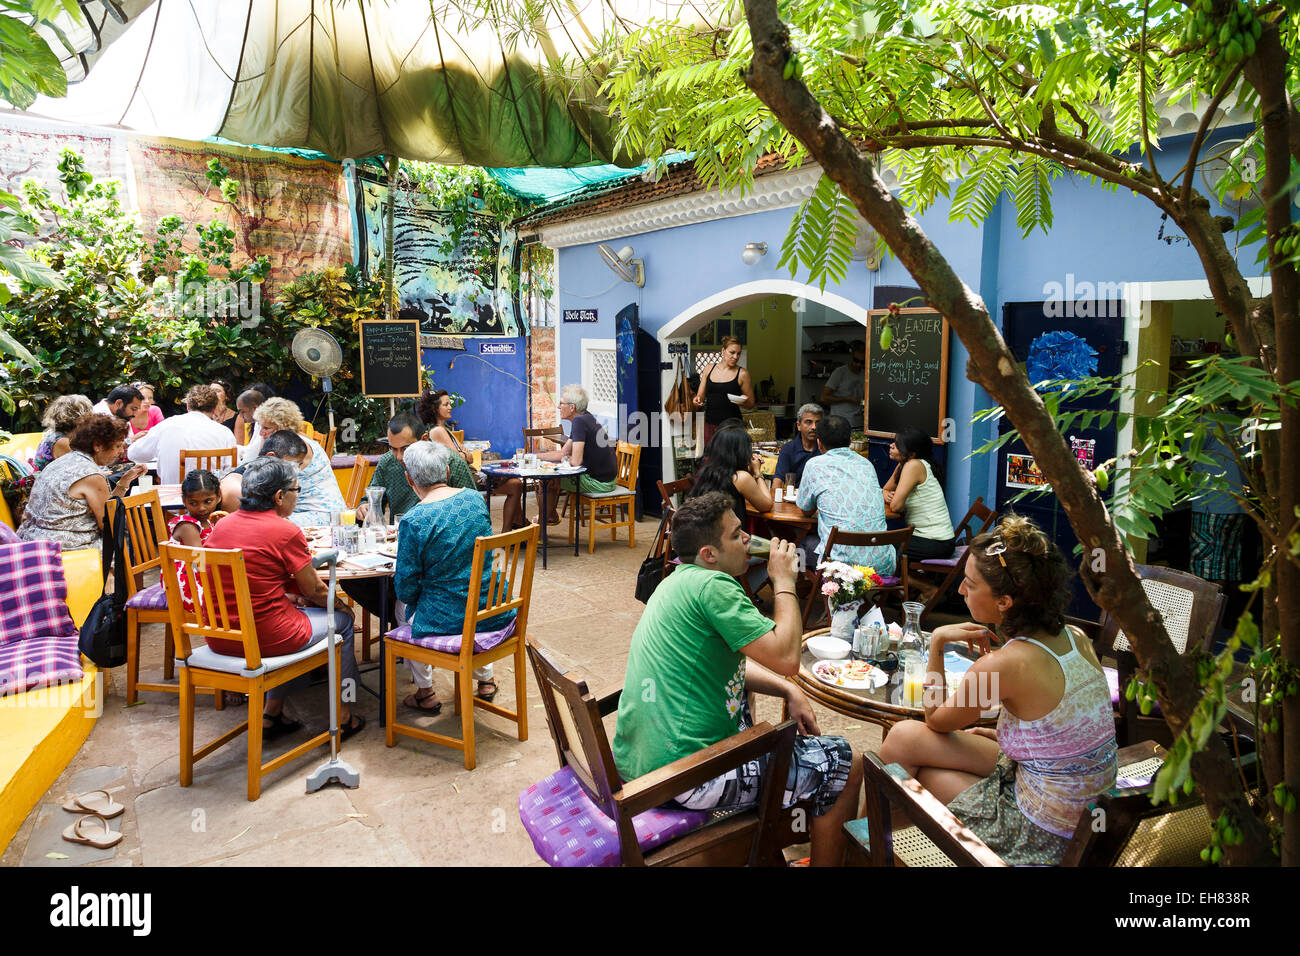 People sitting at the Villa Blanche Bistro, Assagao, Goa, India, Asia - Stock Image